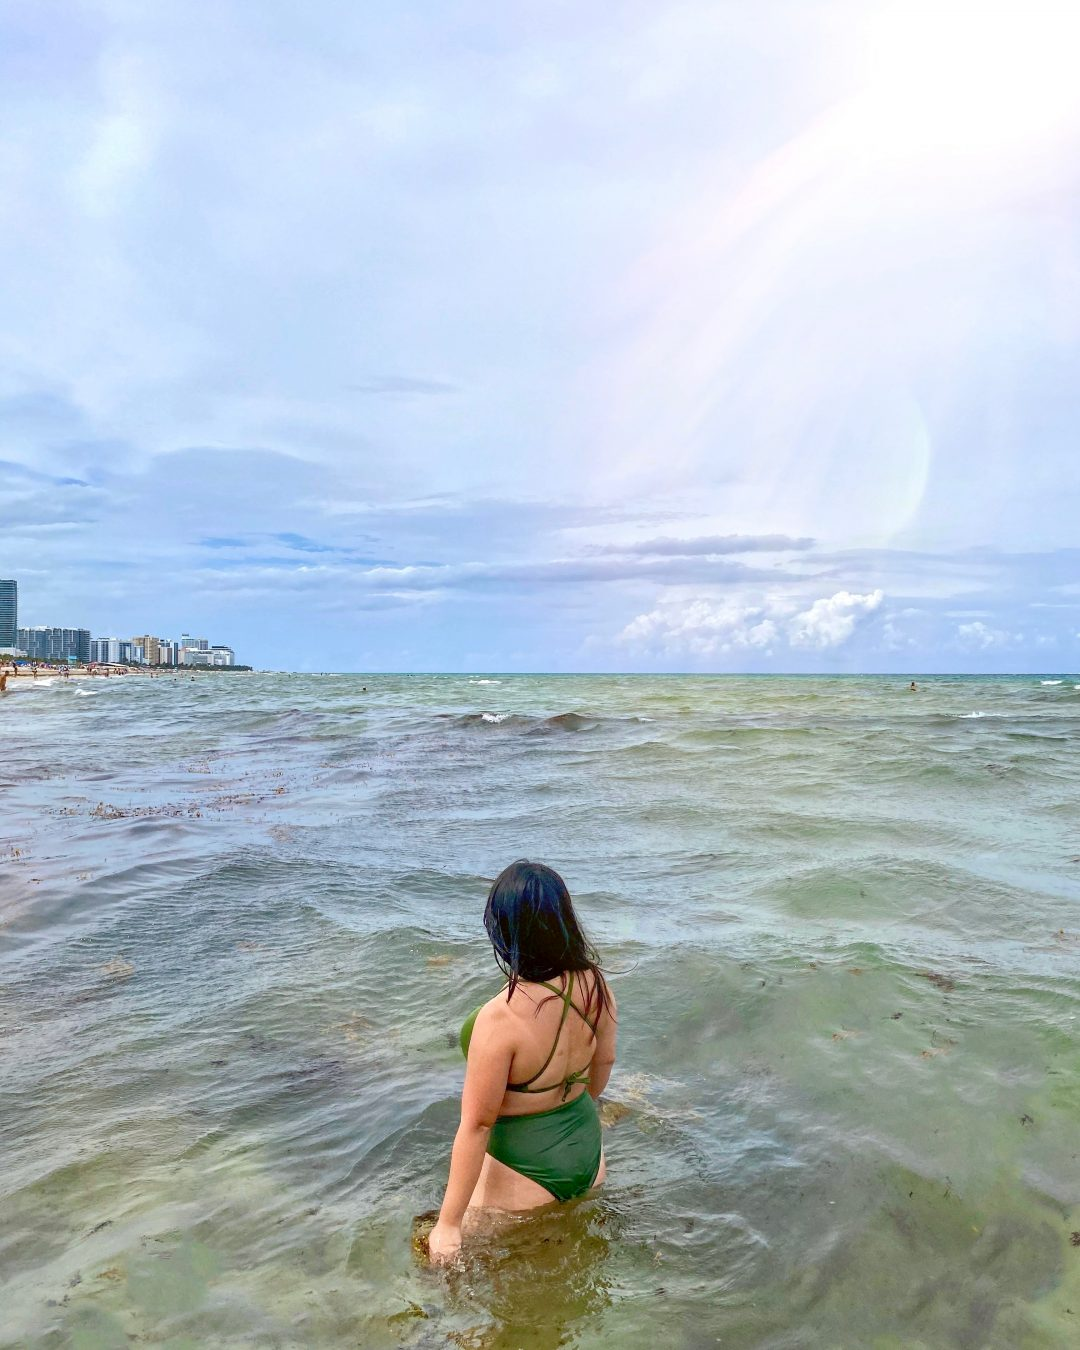 How to Spend 1 Week in Miami: Where to Stay & Play